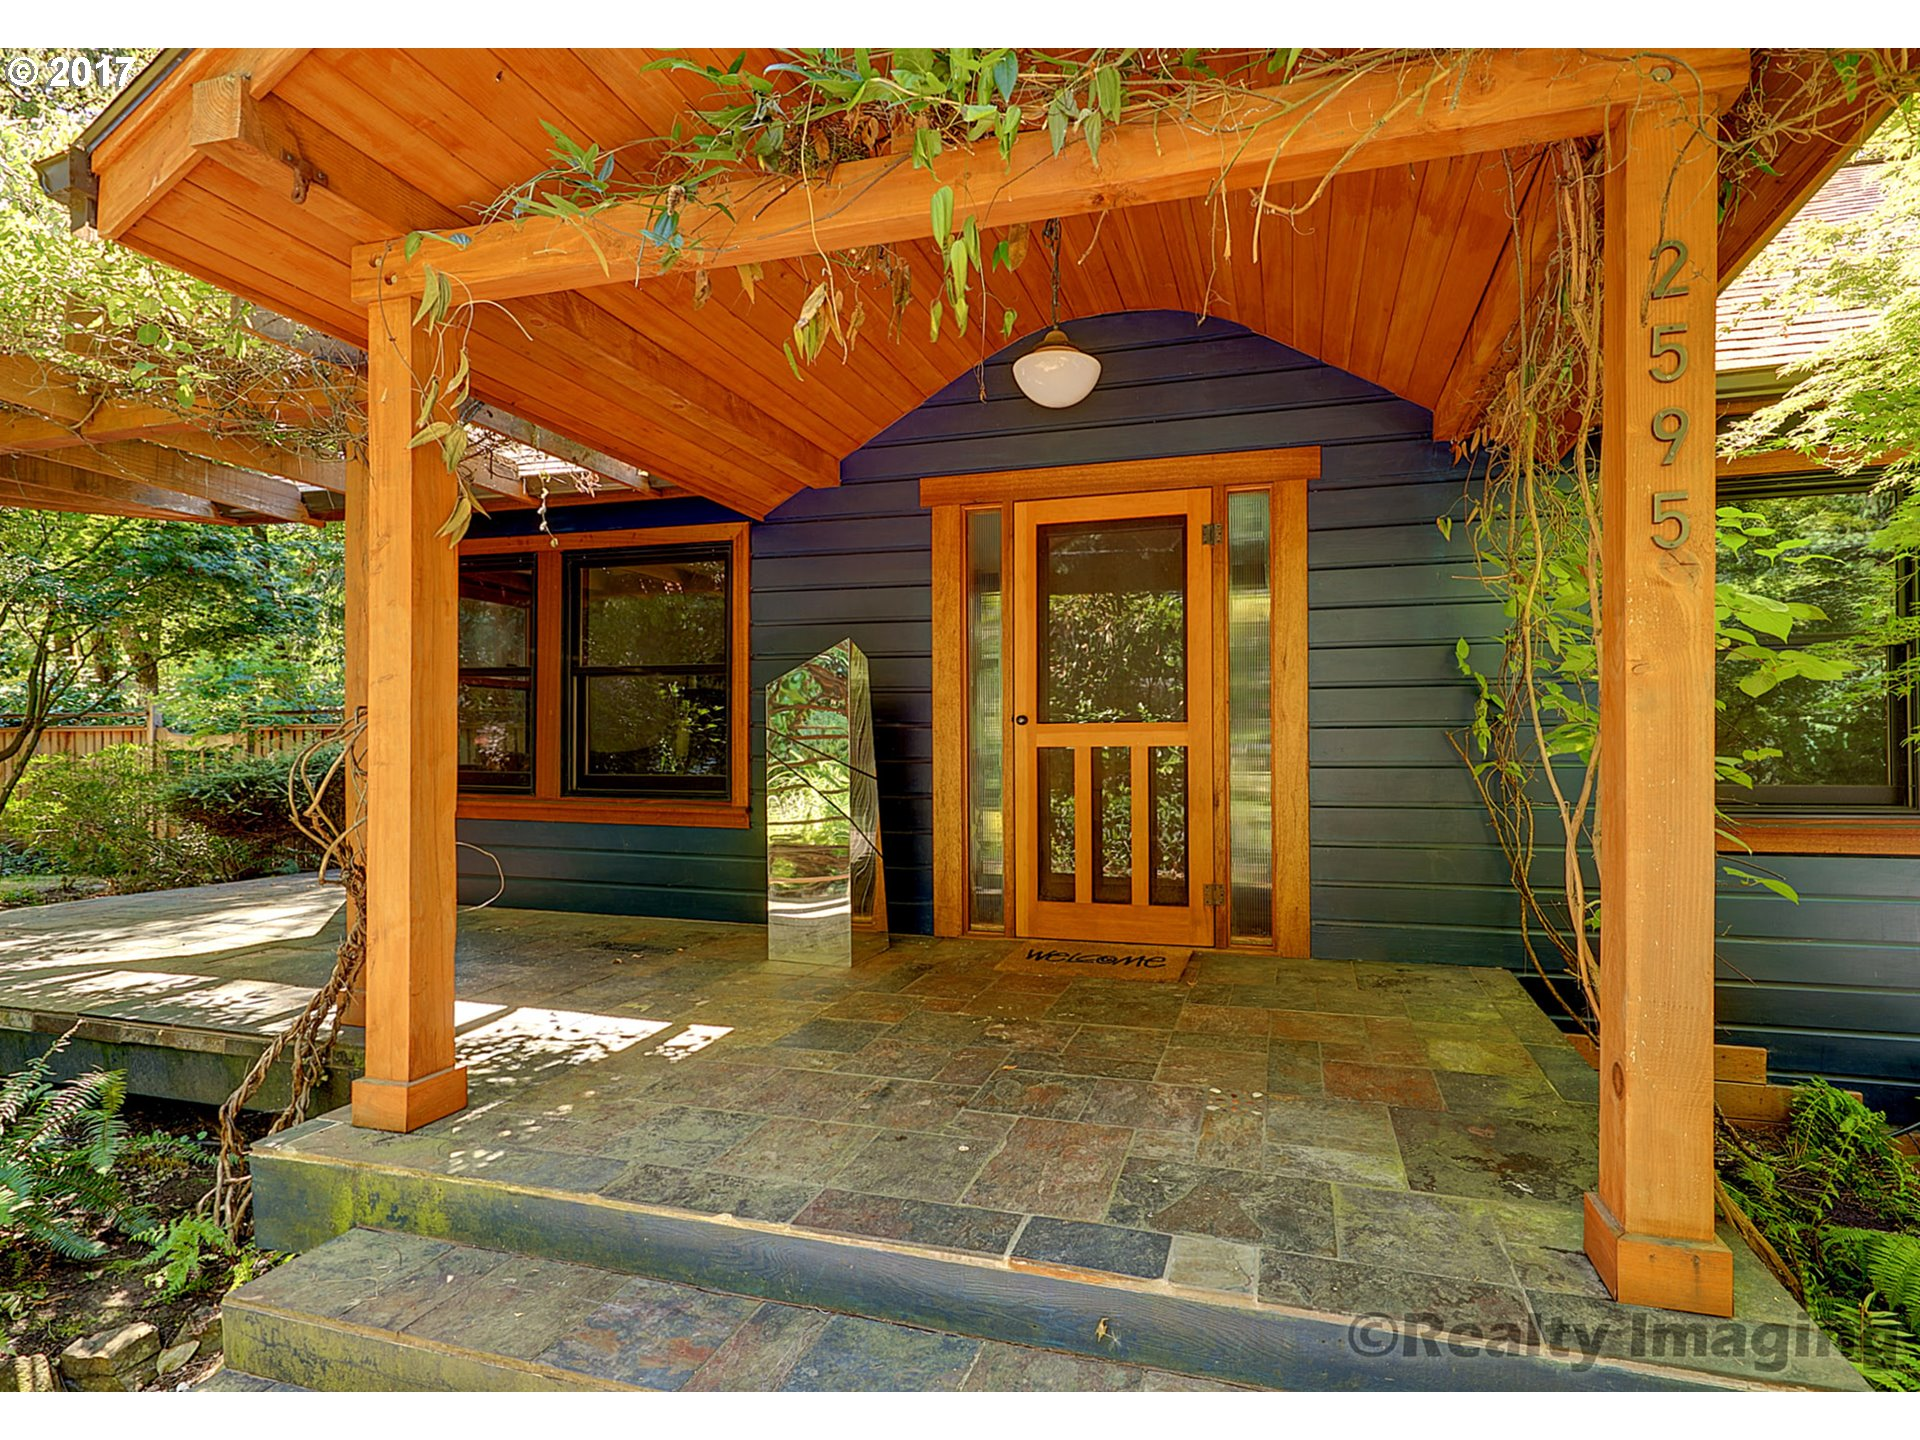 This immaculate, quiet home down a private drive is simply magical. Completely renovated bathrooms and a professionally landscaped, gardener's fantasy in the way of a mature, lush yard that surrounds the home on 3 sides. Covered wrap-around slate&mahogany porches/decks.Wood fired outdoor pizza oven,Oregon Madrone floors throughout,custom chicken coop,tree house with suspension bridge are just a few of the exceptional features.